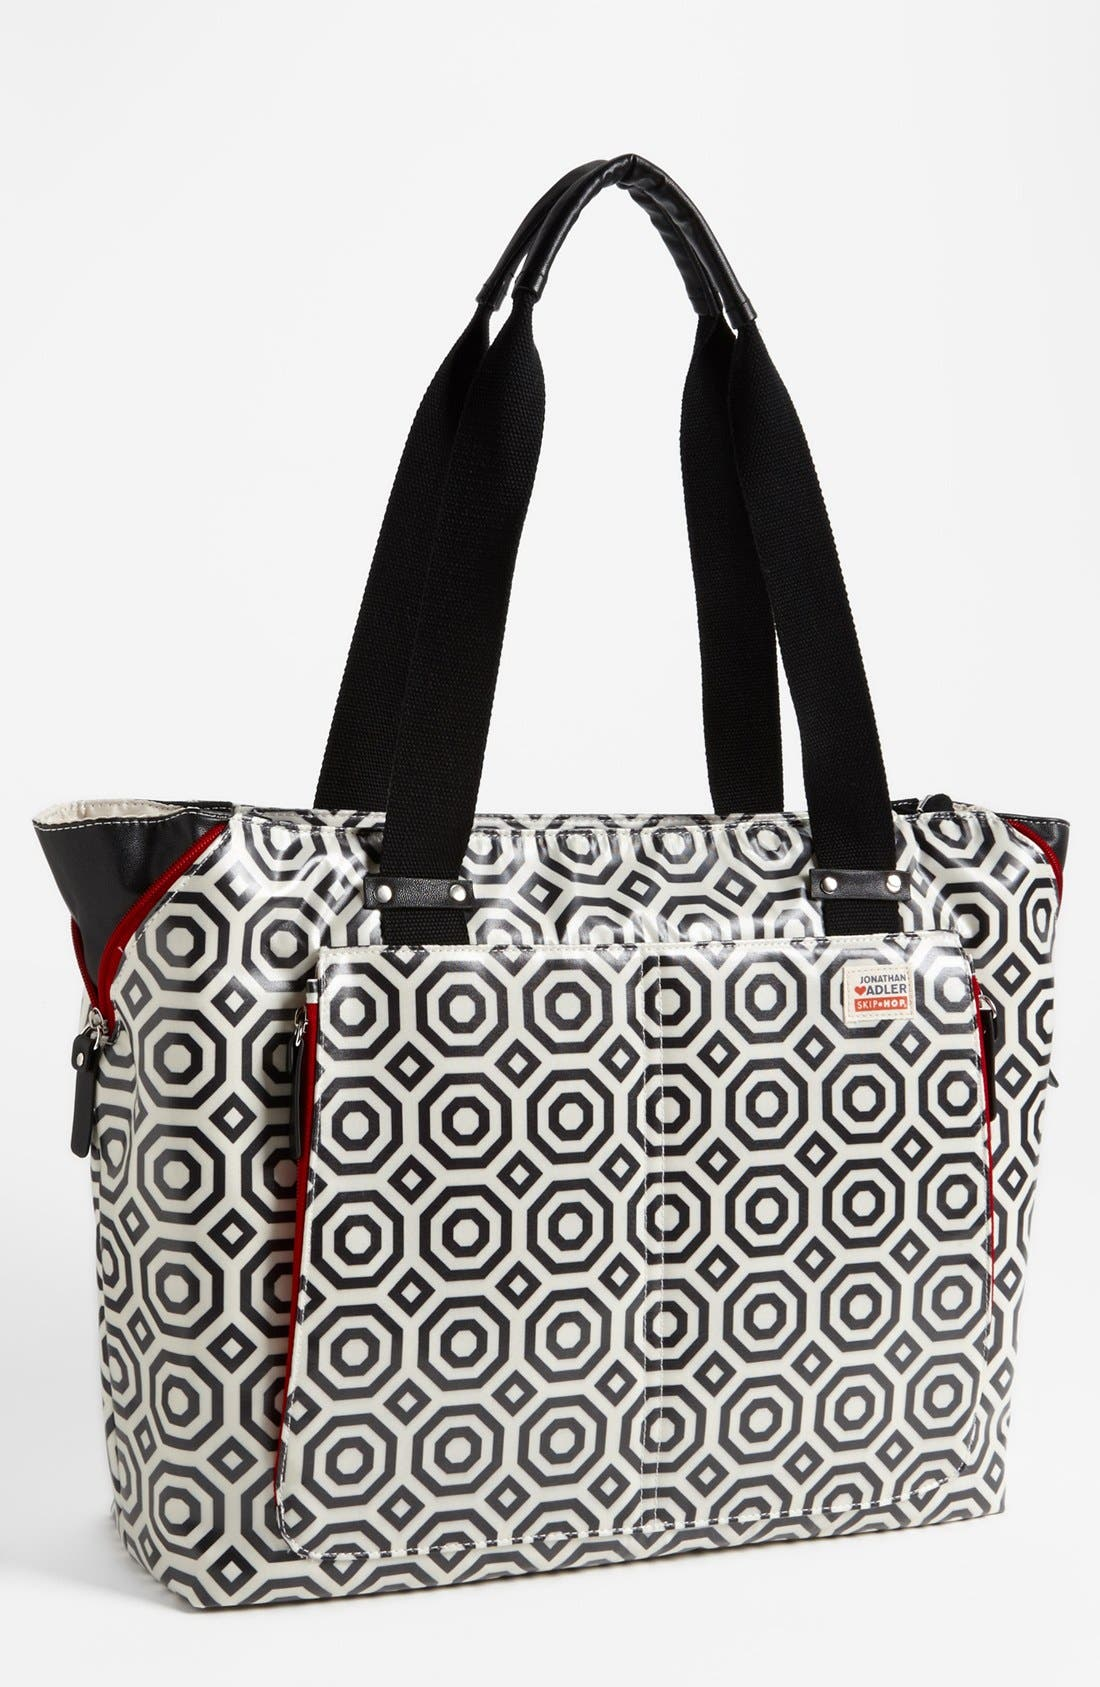 Main Image - Skip Hop 'Jonathan Adler - Light and Luxe' Tote